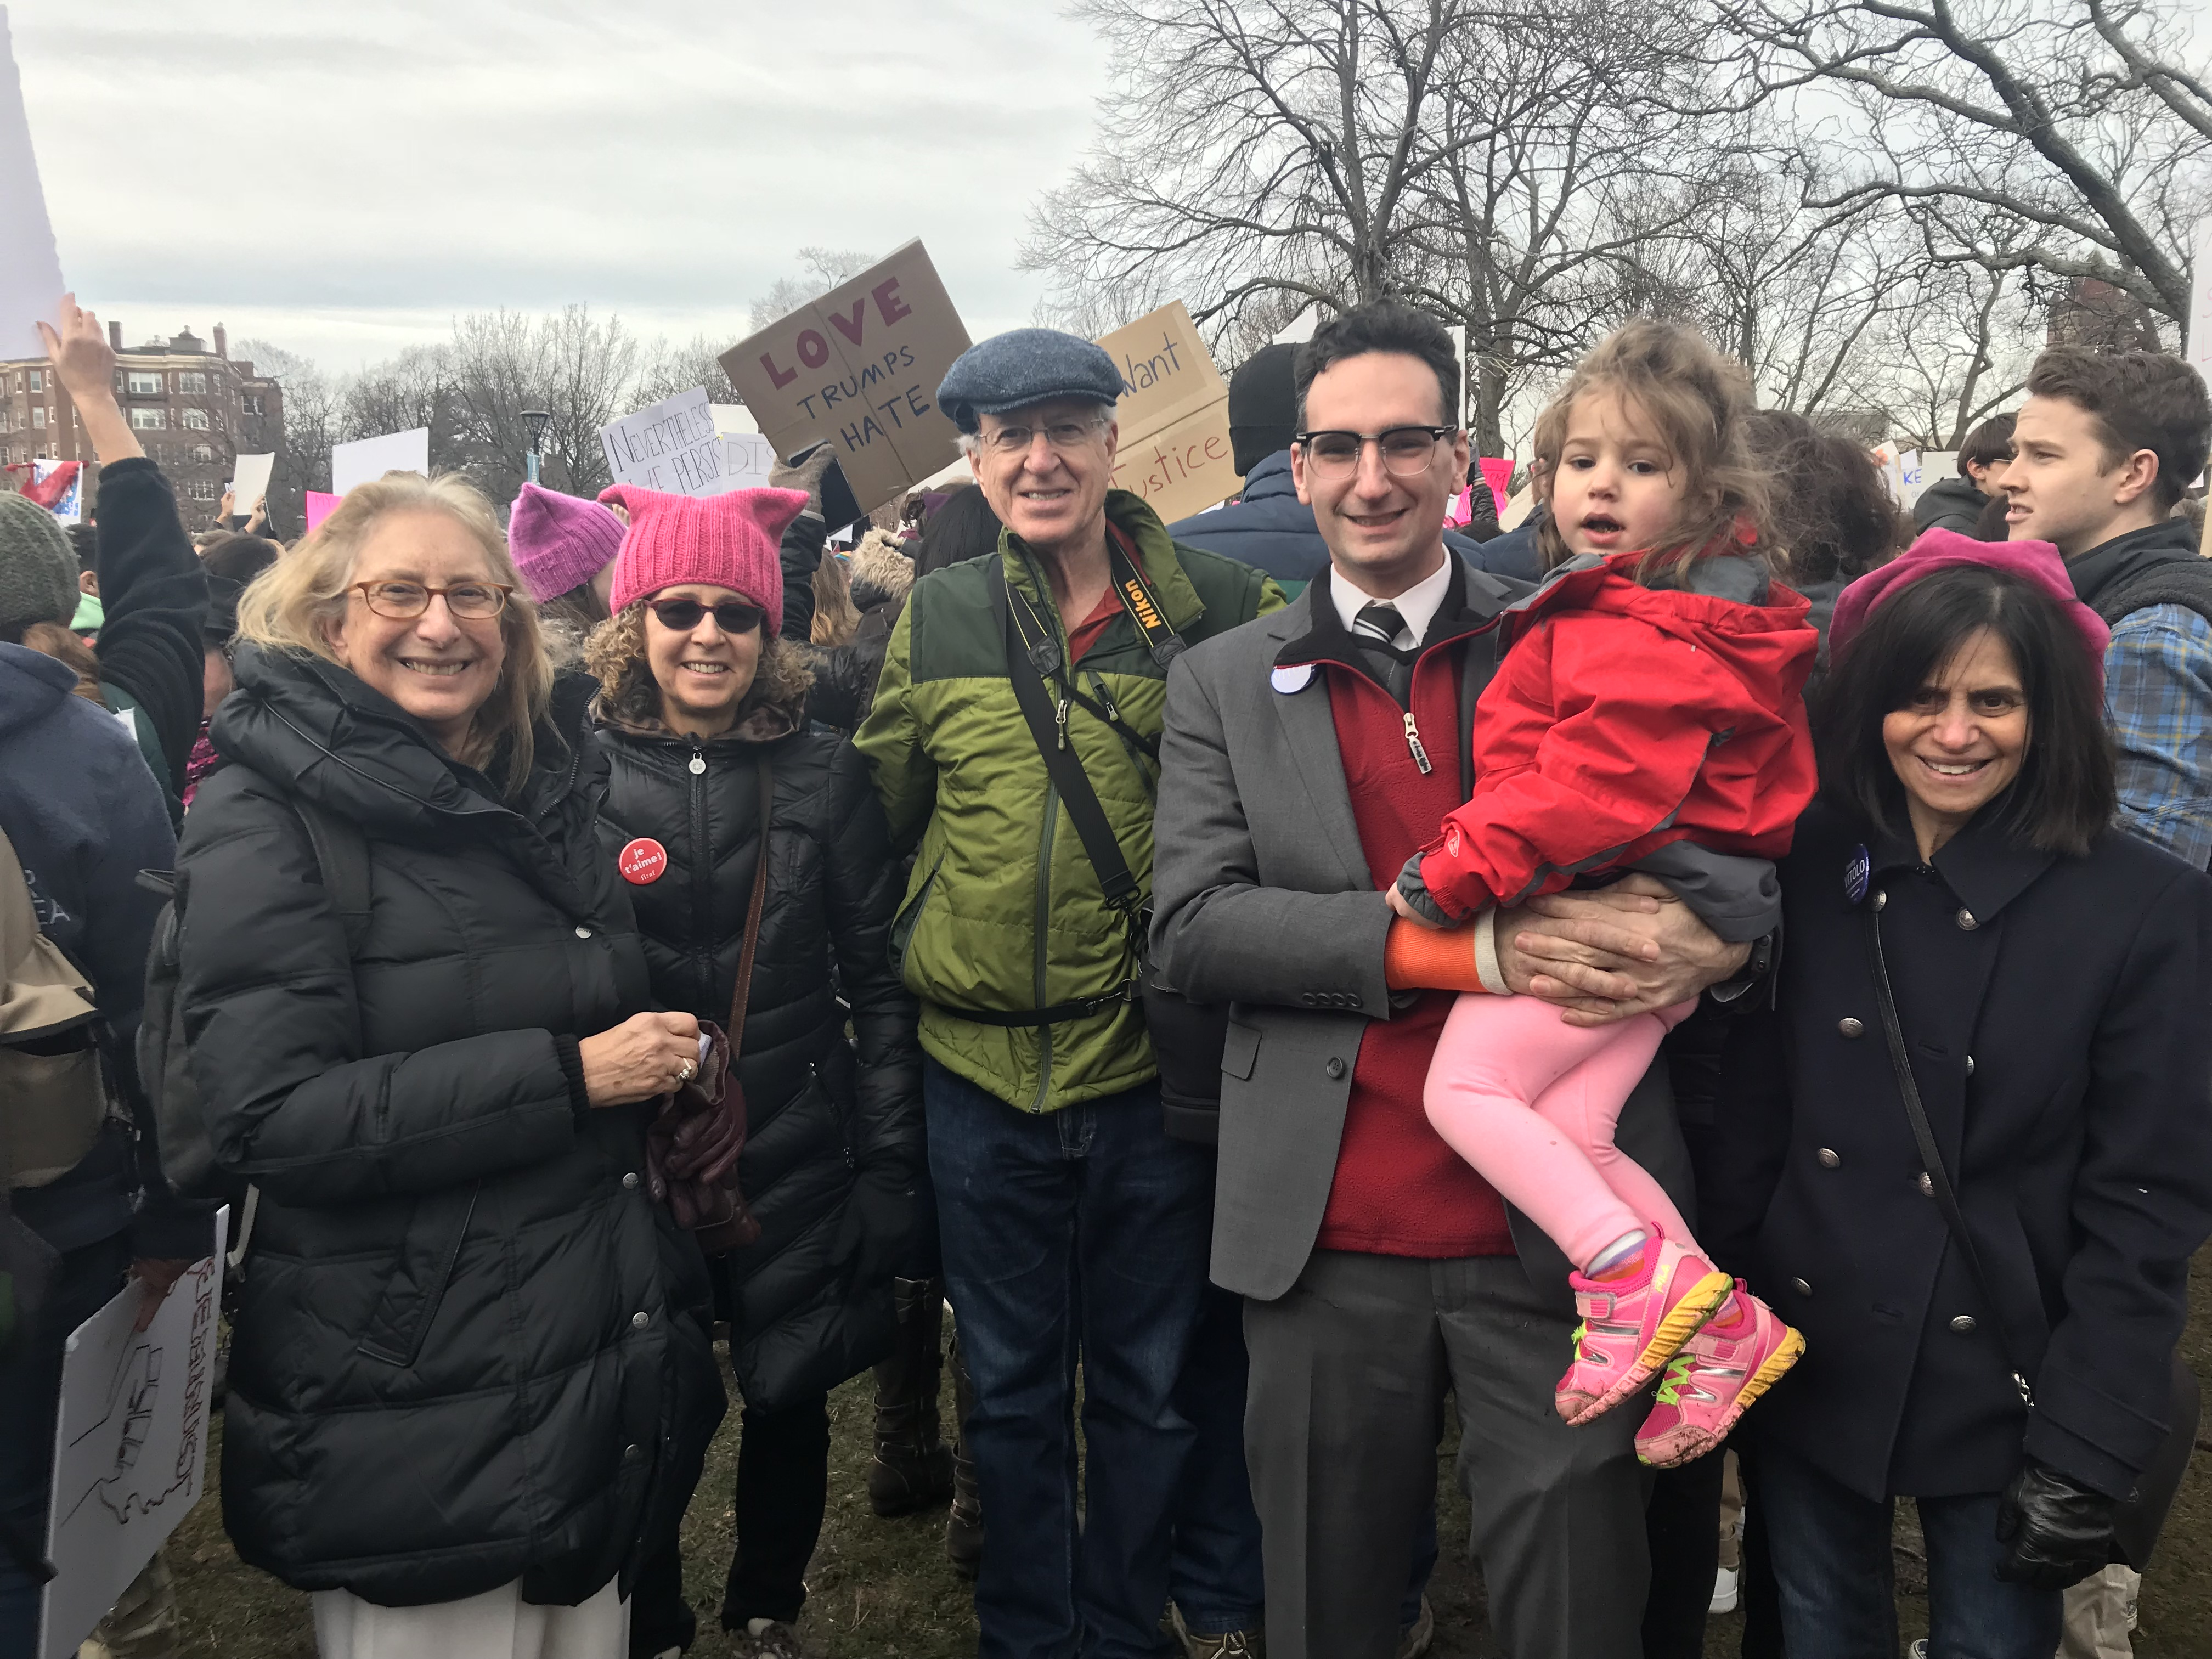 Tommy Vitolo and daughter at Women's March